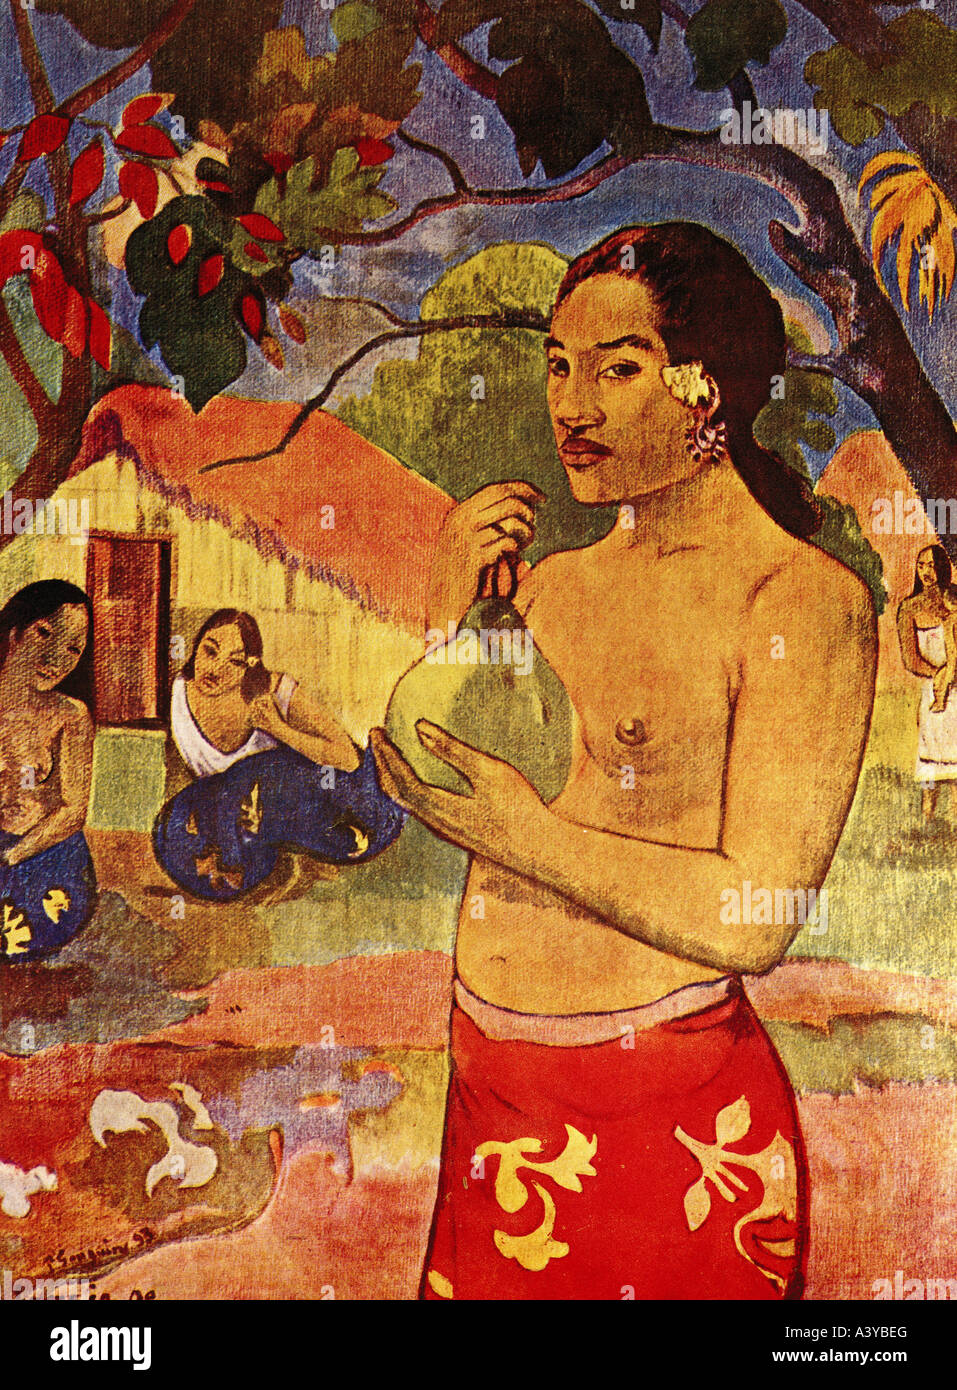 """fine arts, Gauguin, Paul, (1848 - 1903), painting, ""Tahiti woman with fruit"", 1893, oil on canvas, Puschkin museum, Stock Photo"